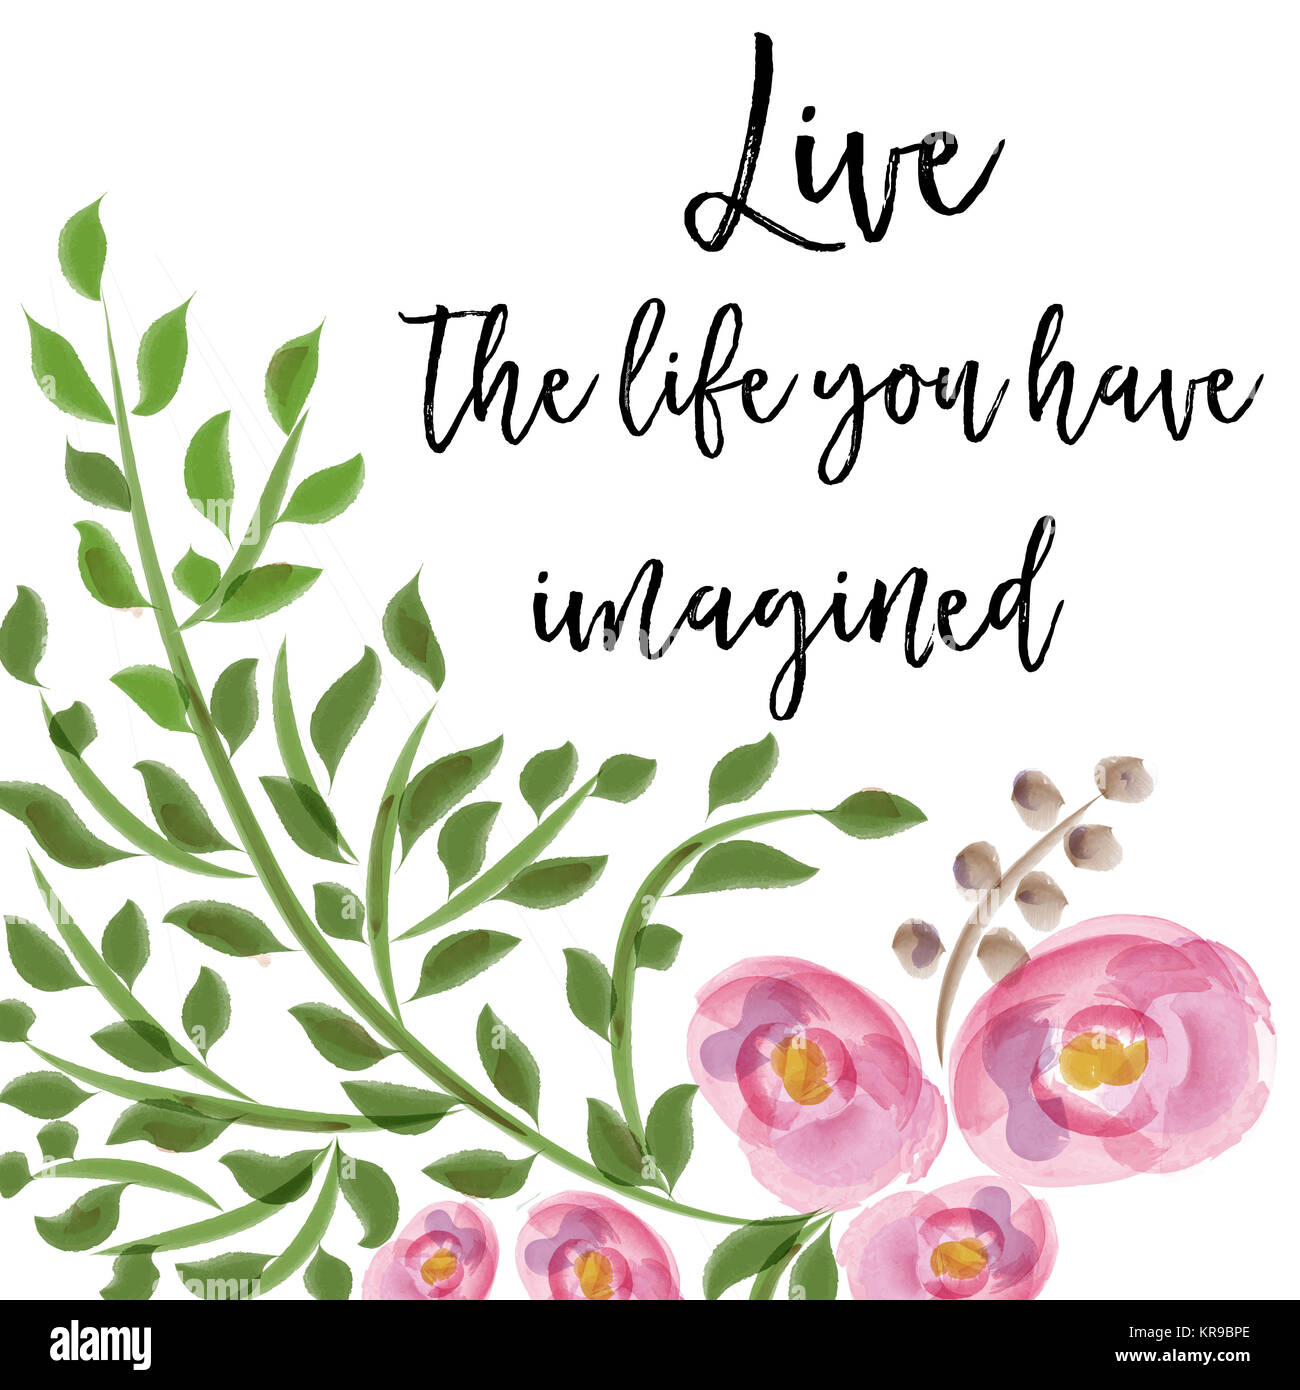 Beautiful Life Quote With Floral Watercolor Background Stock Photo Alamy